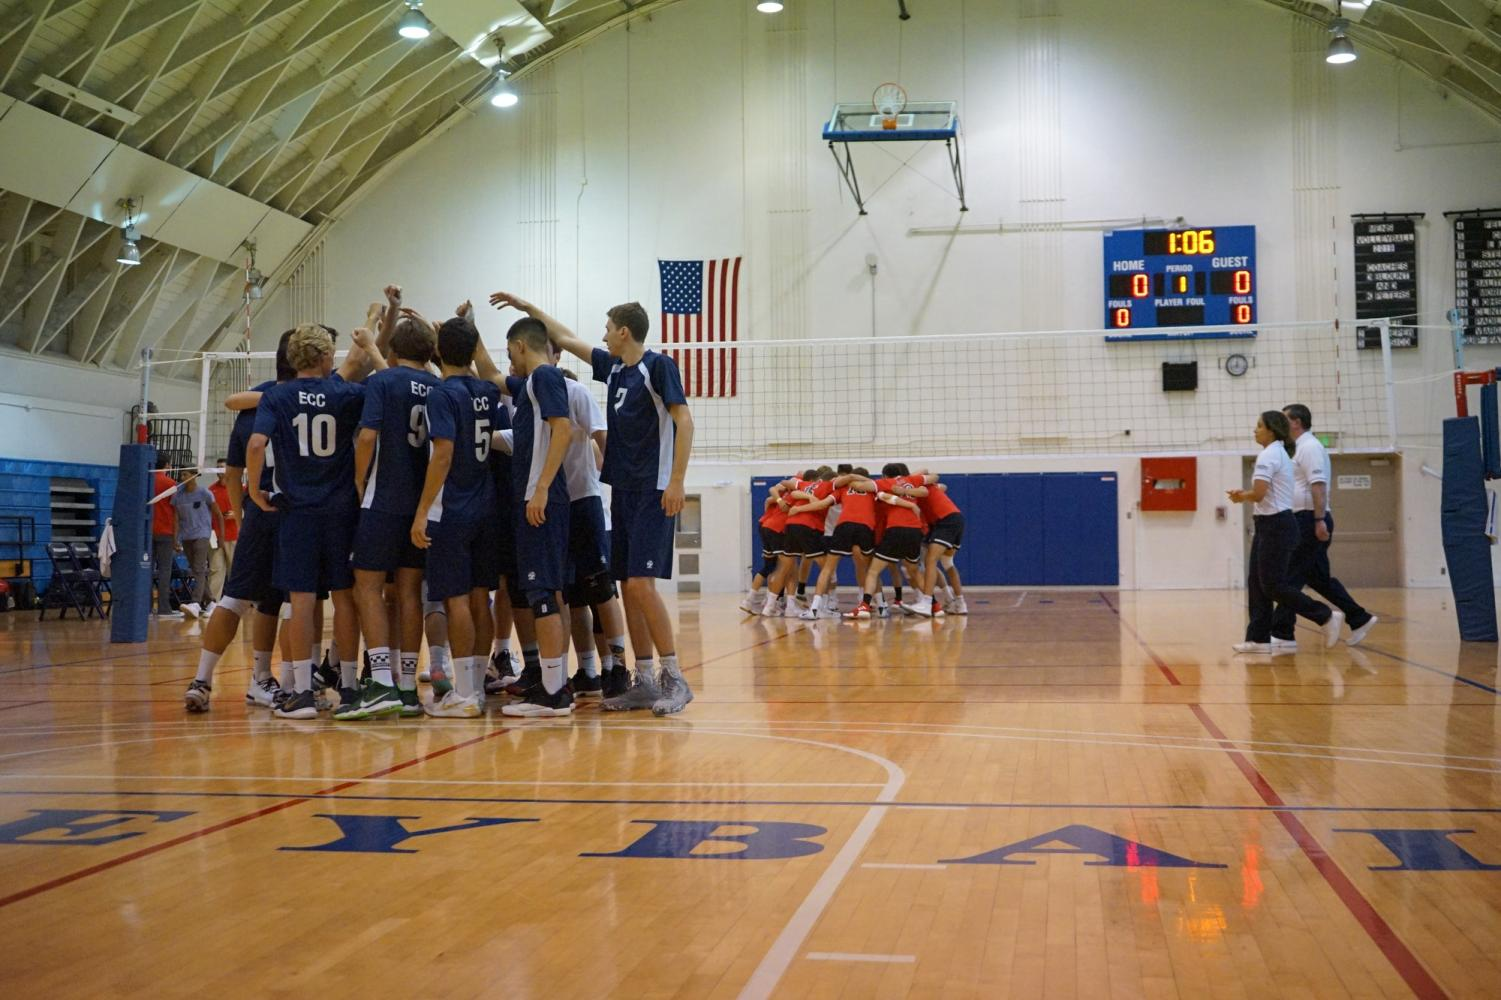 """Players from El Camino College and Santa Barbara City College huddling on their respective sides of the court before their match against each other on Wednesday, April 3. """"We came out kind of flat in the beginning, but as the game picked up, we were able to pick up the intensity and bounce back,"""" Warriors setter Joseph Sico said. Photo credit: Jun Ueda"""